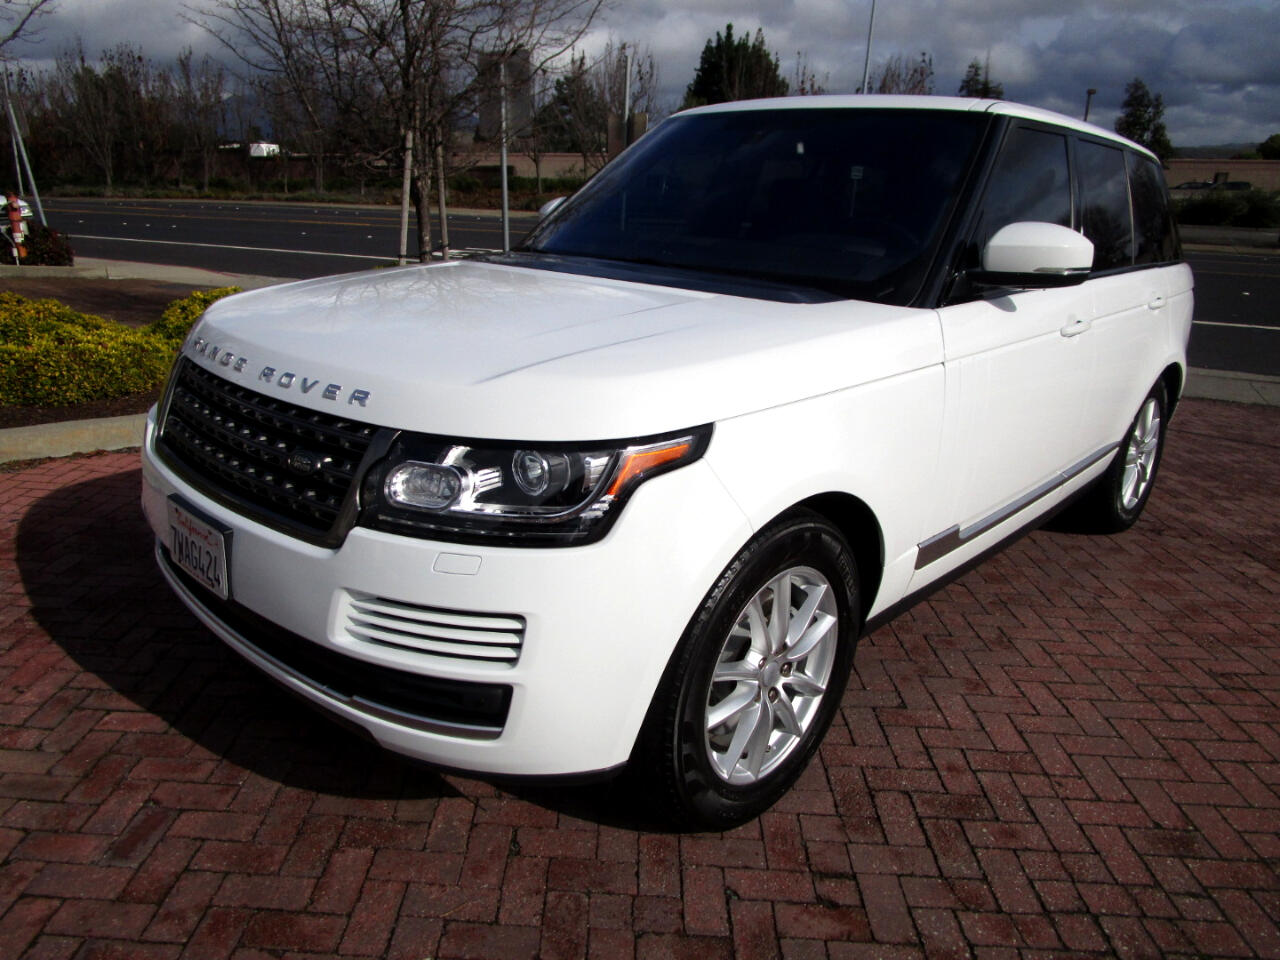 2016 Land Rover Range Rover 3.0 SUPERCHARGED V6*SLIDE PANO*HEAT SEATS*MERIDIAN